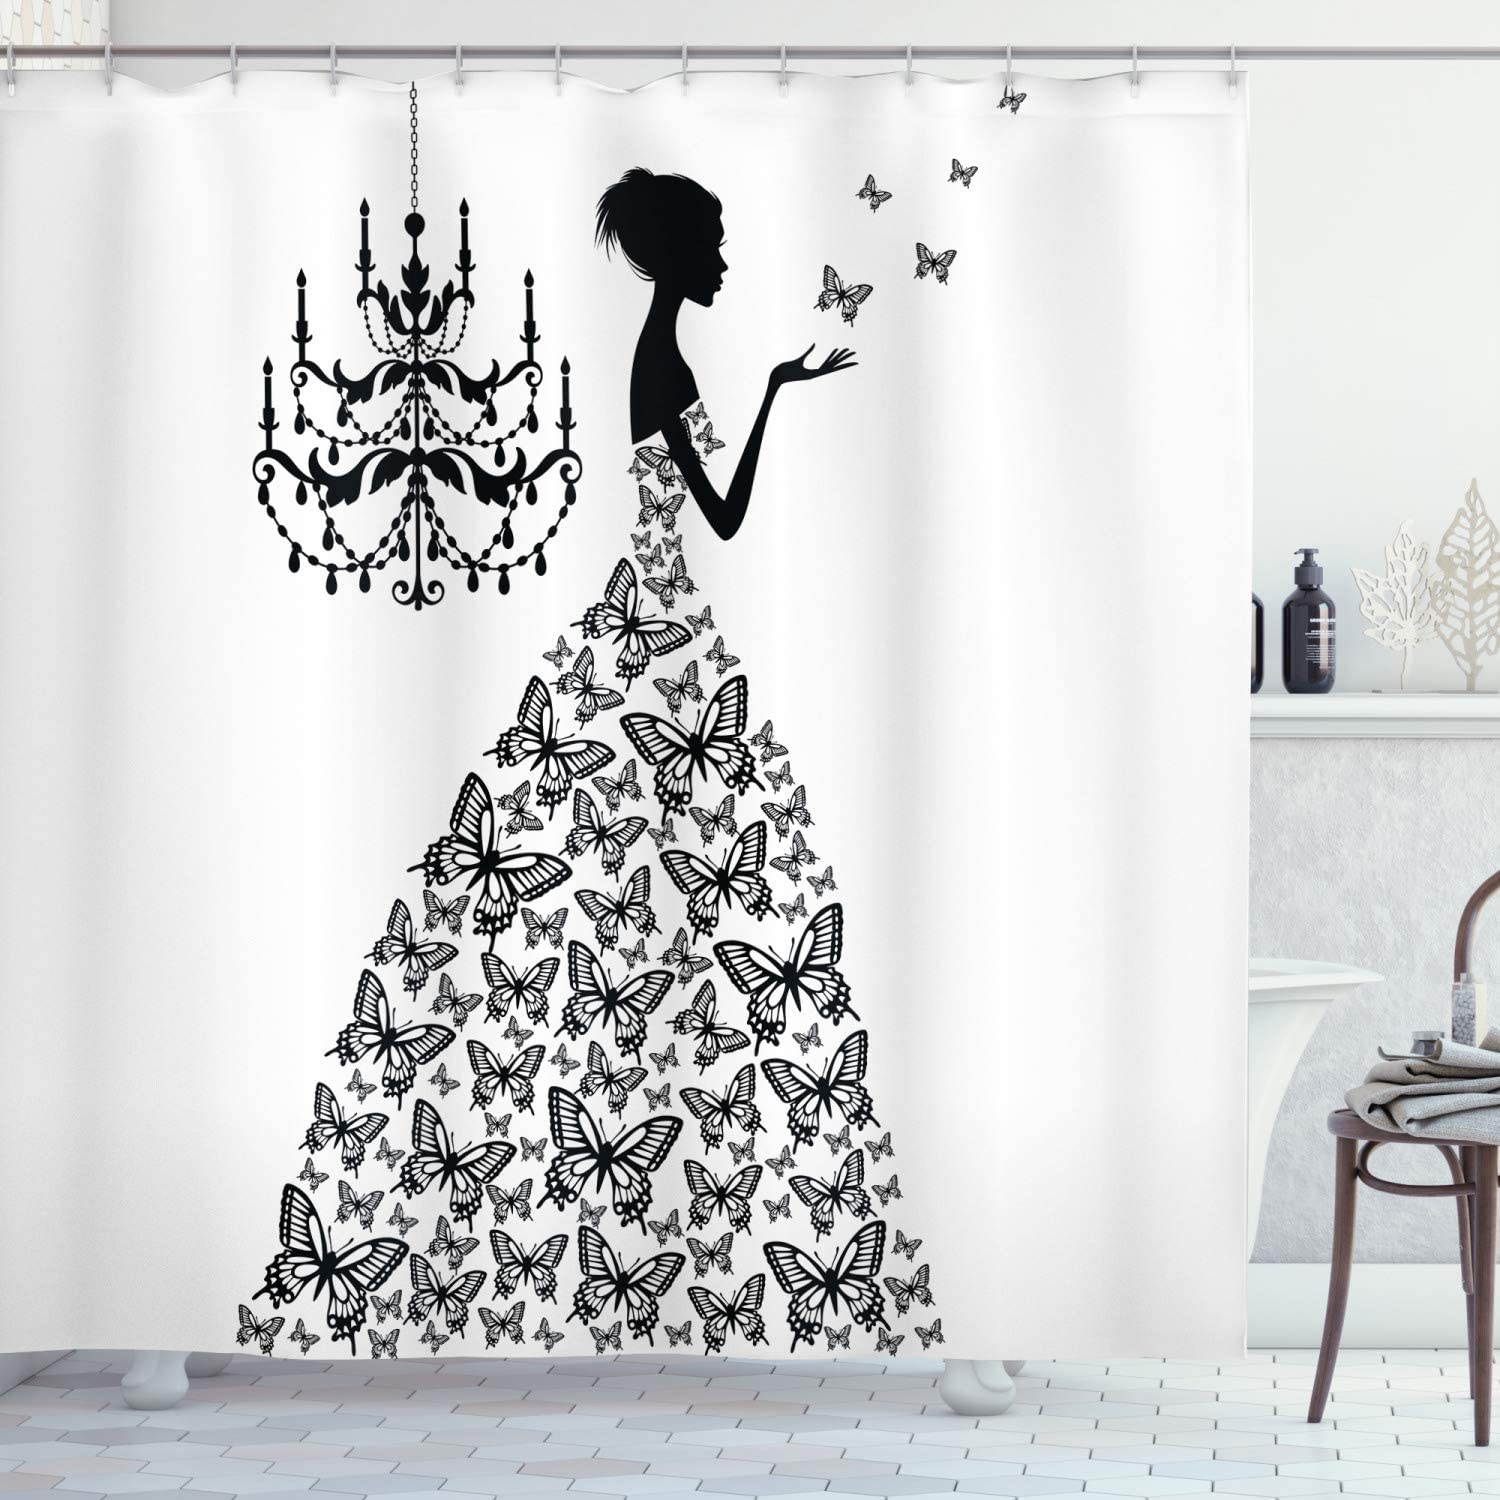 """Ambesonne Vintage Shower Curtain, Love Country Wedding Themed Romantic Butterflies Princess Retro Parisienne, Cloth Fabric Bathroom Decor Set with Hooks, 70"""" Long, Charcoal Grey White"""